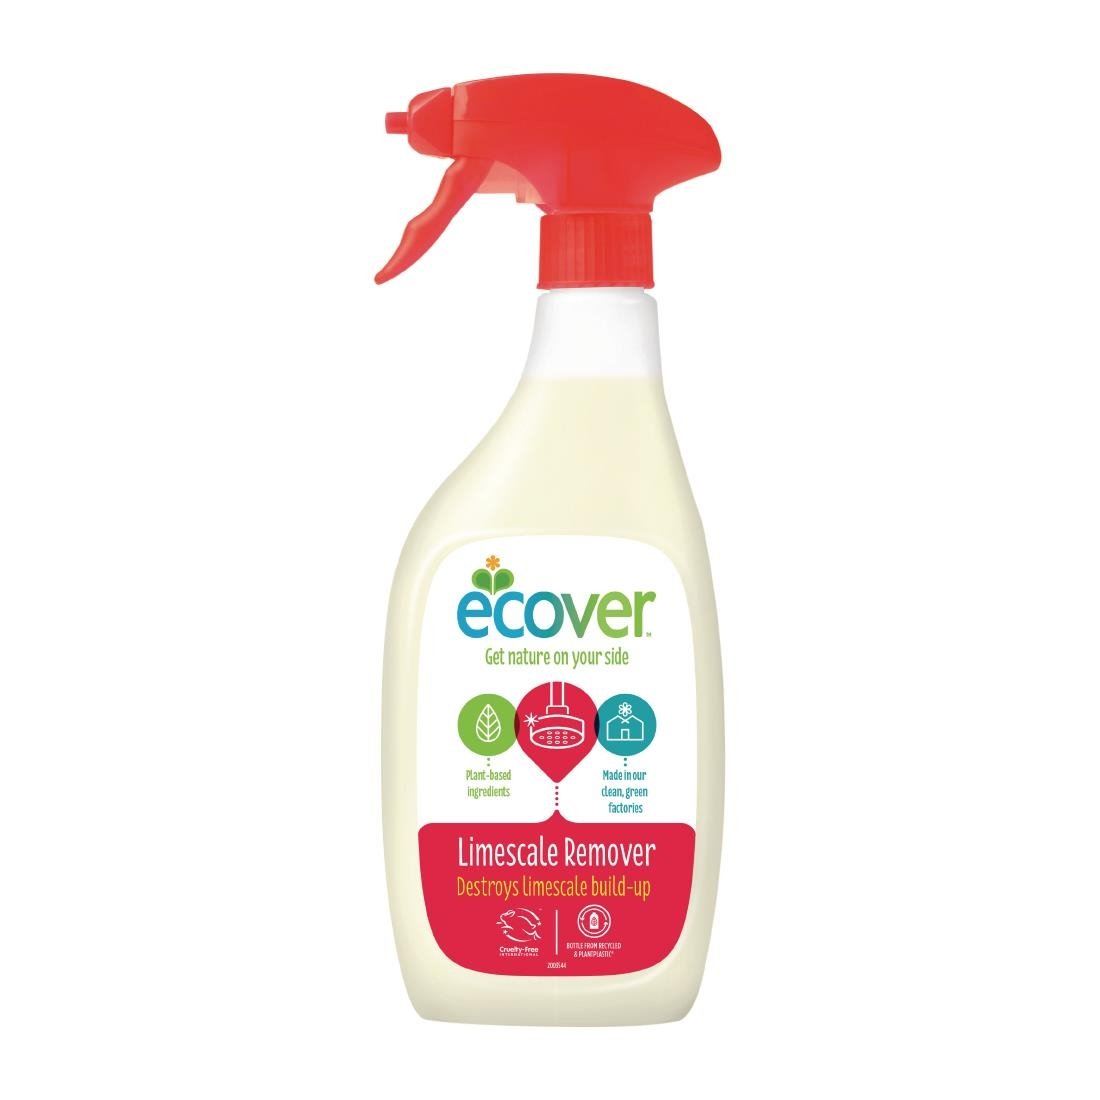 Image of Ecover Limescale Remover Ready To Use 500ml (6 Pack) Pack of 6